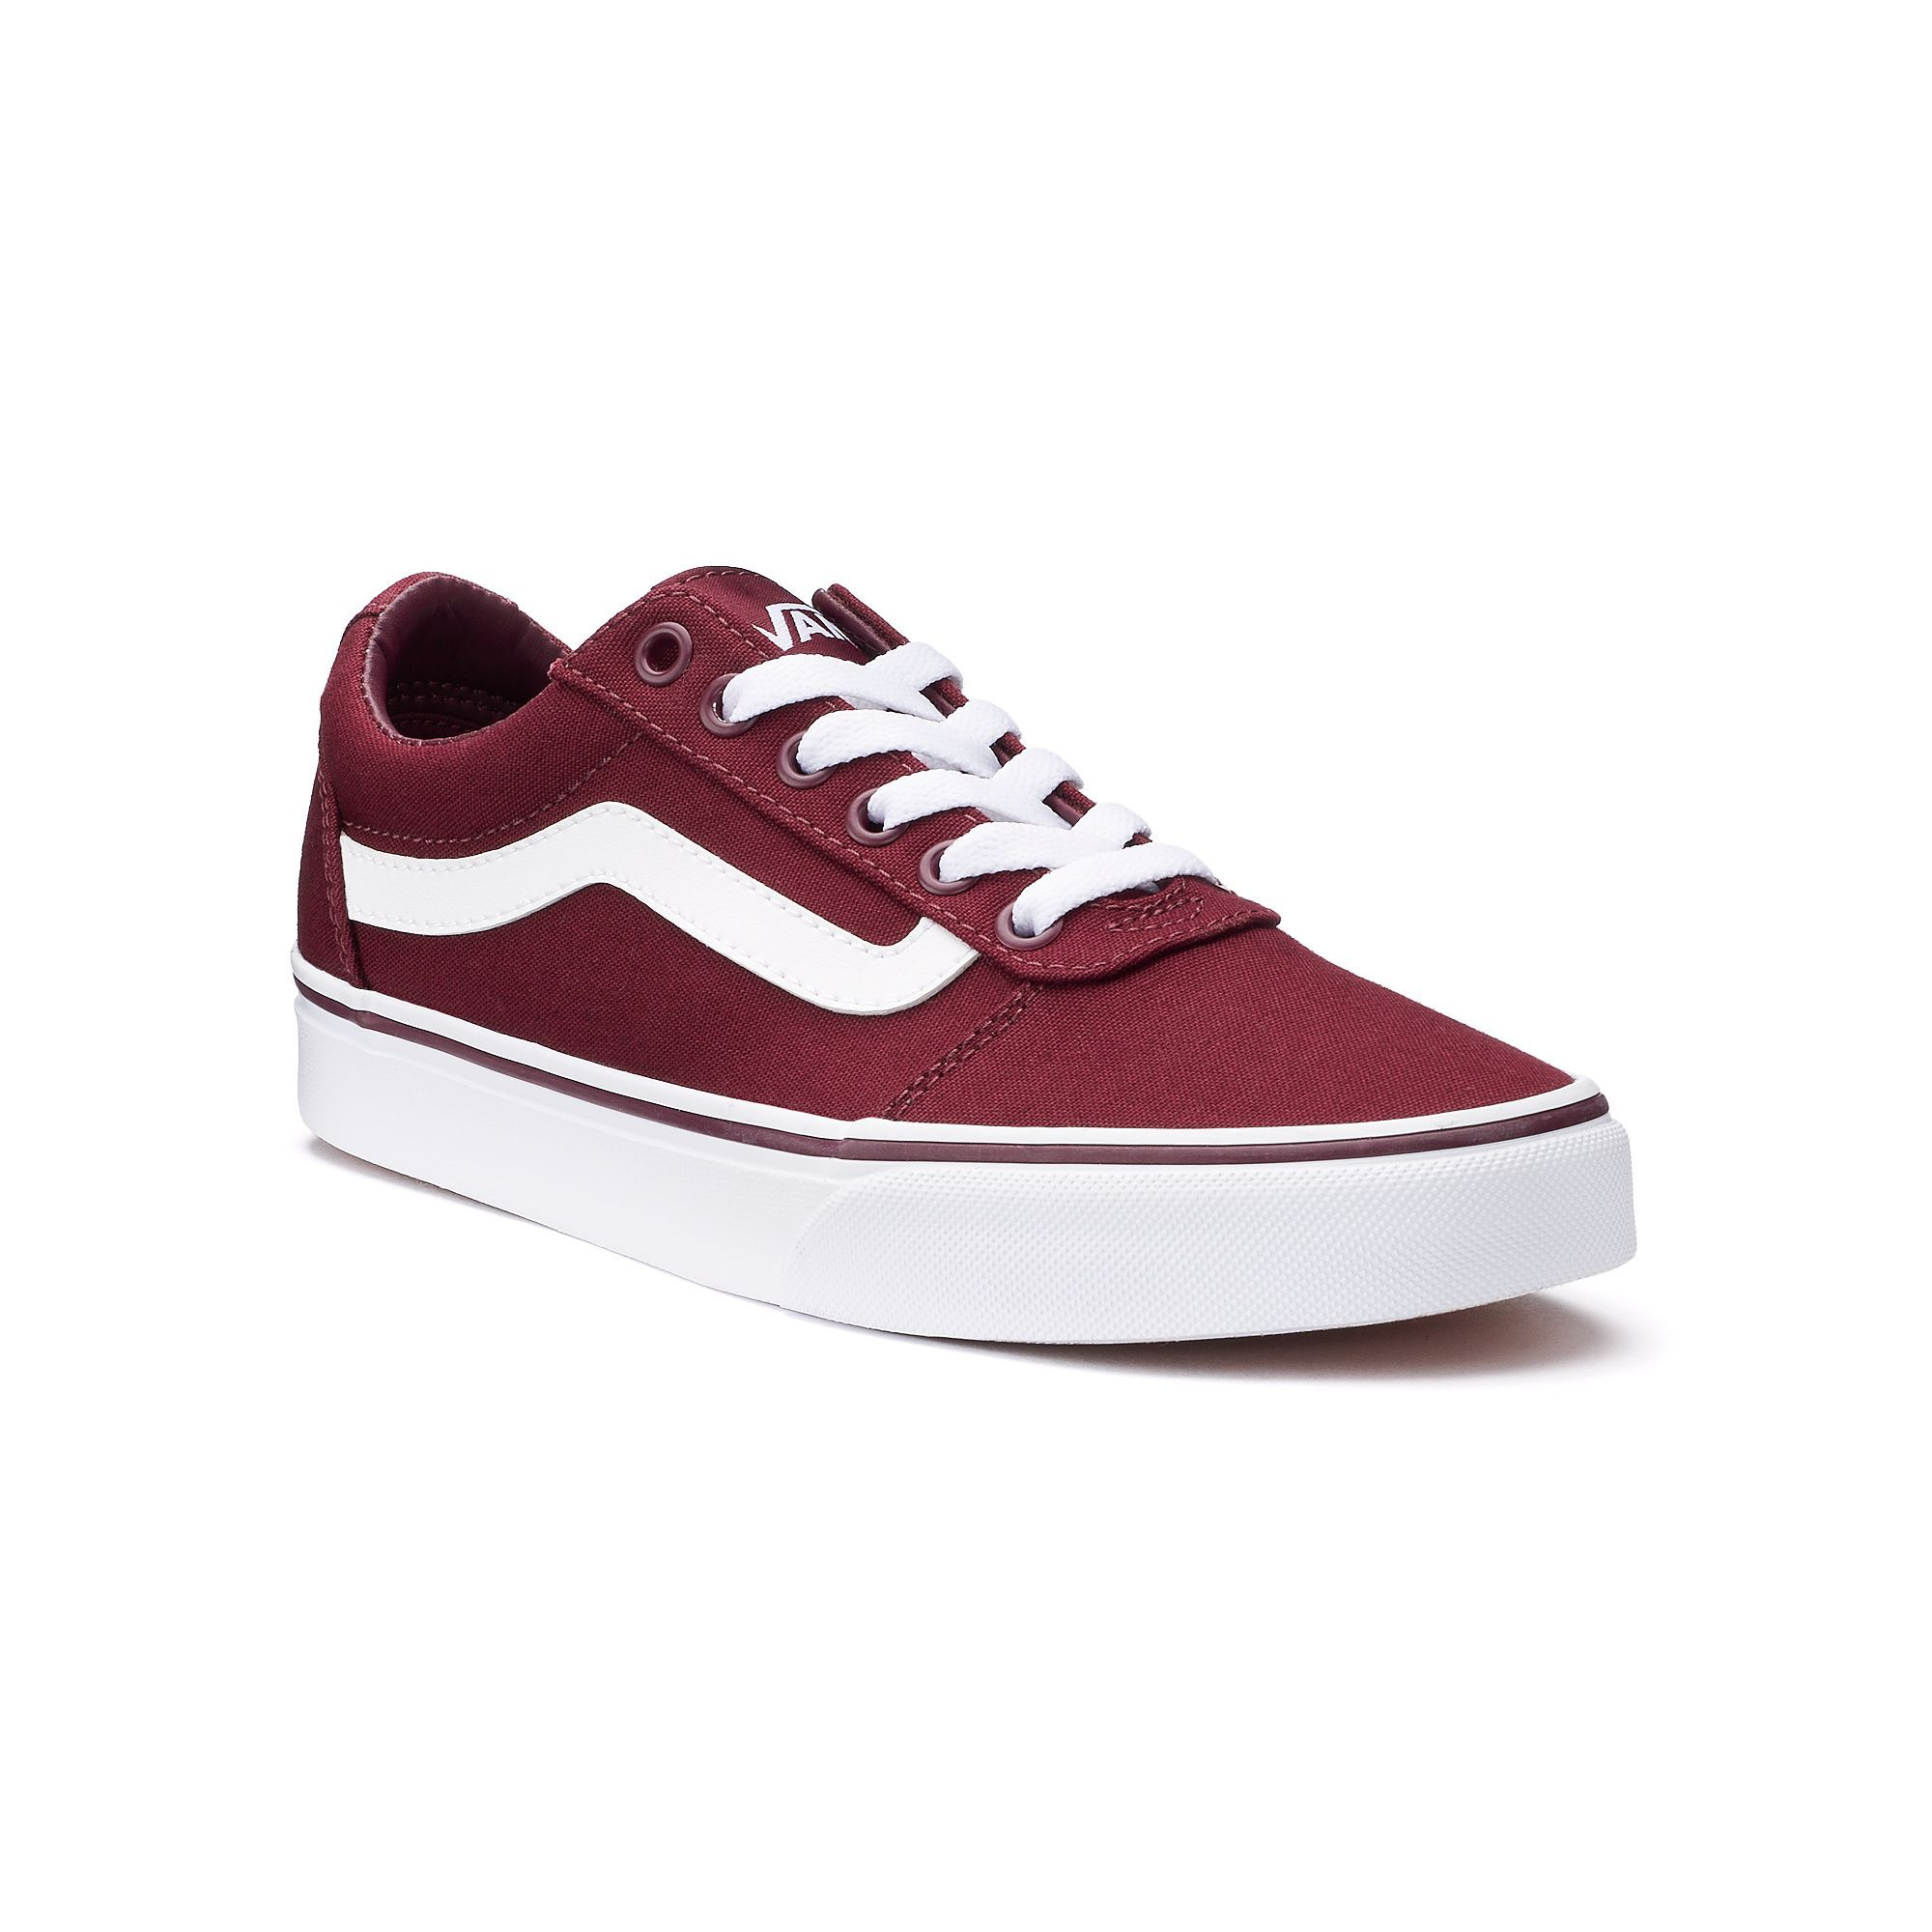 b7d79be822 Vans Ward Women s Canvas Skate Shoes